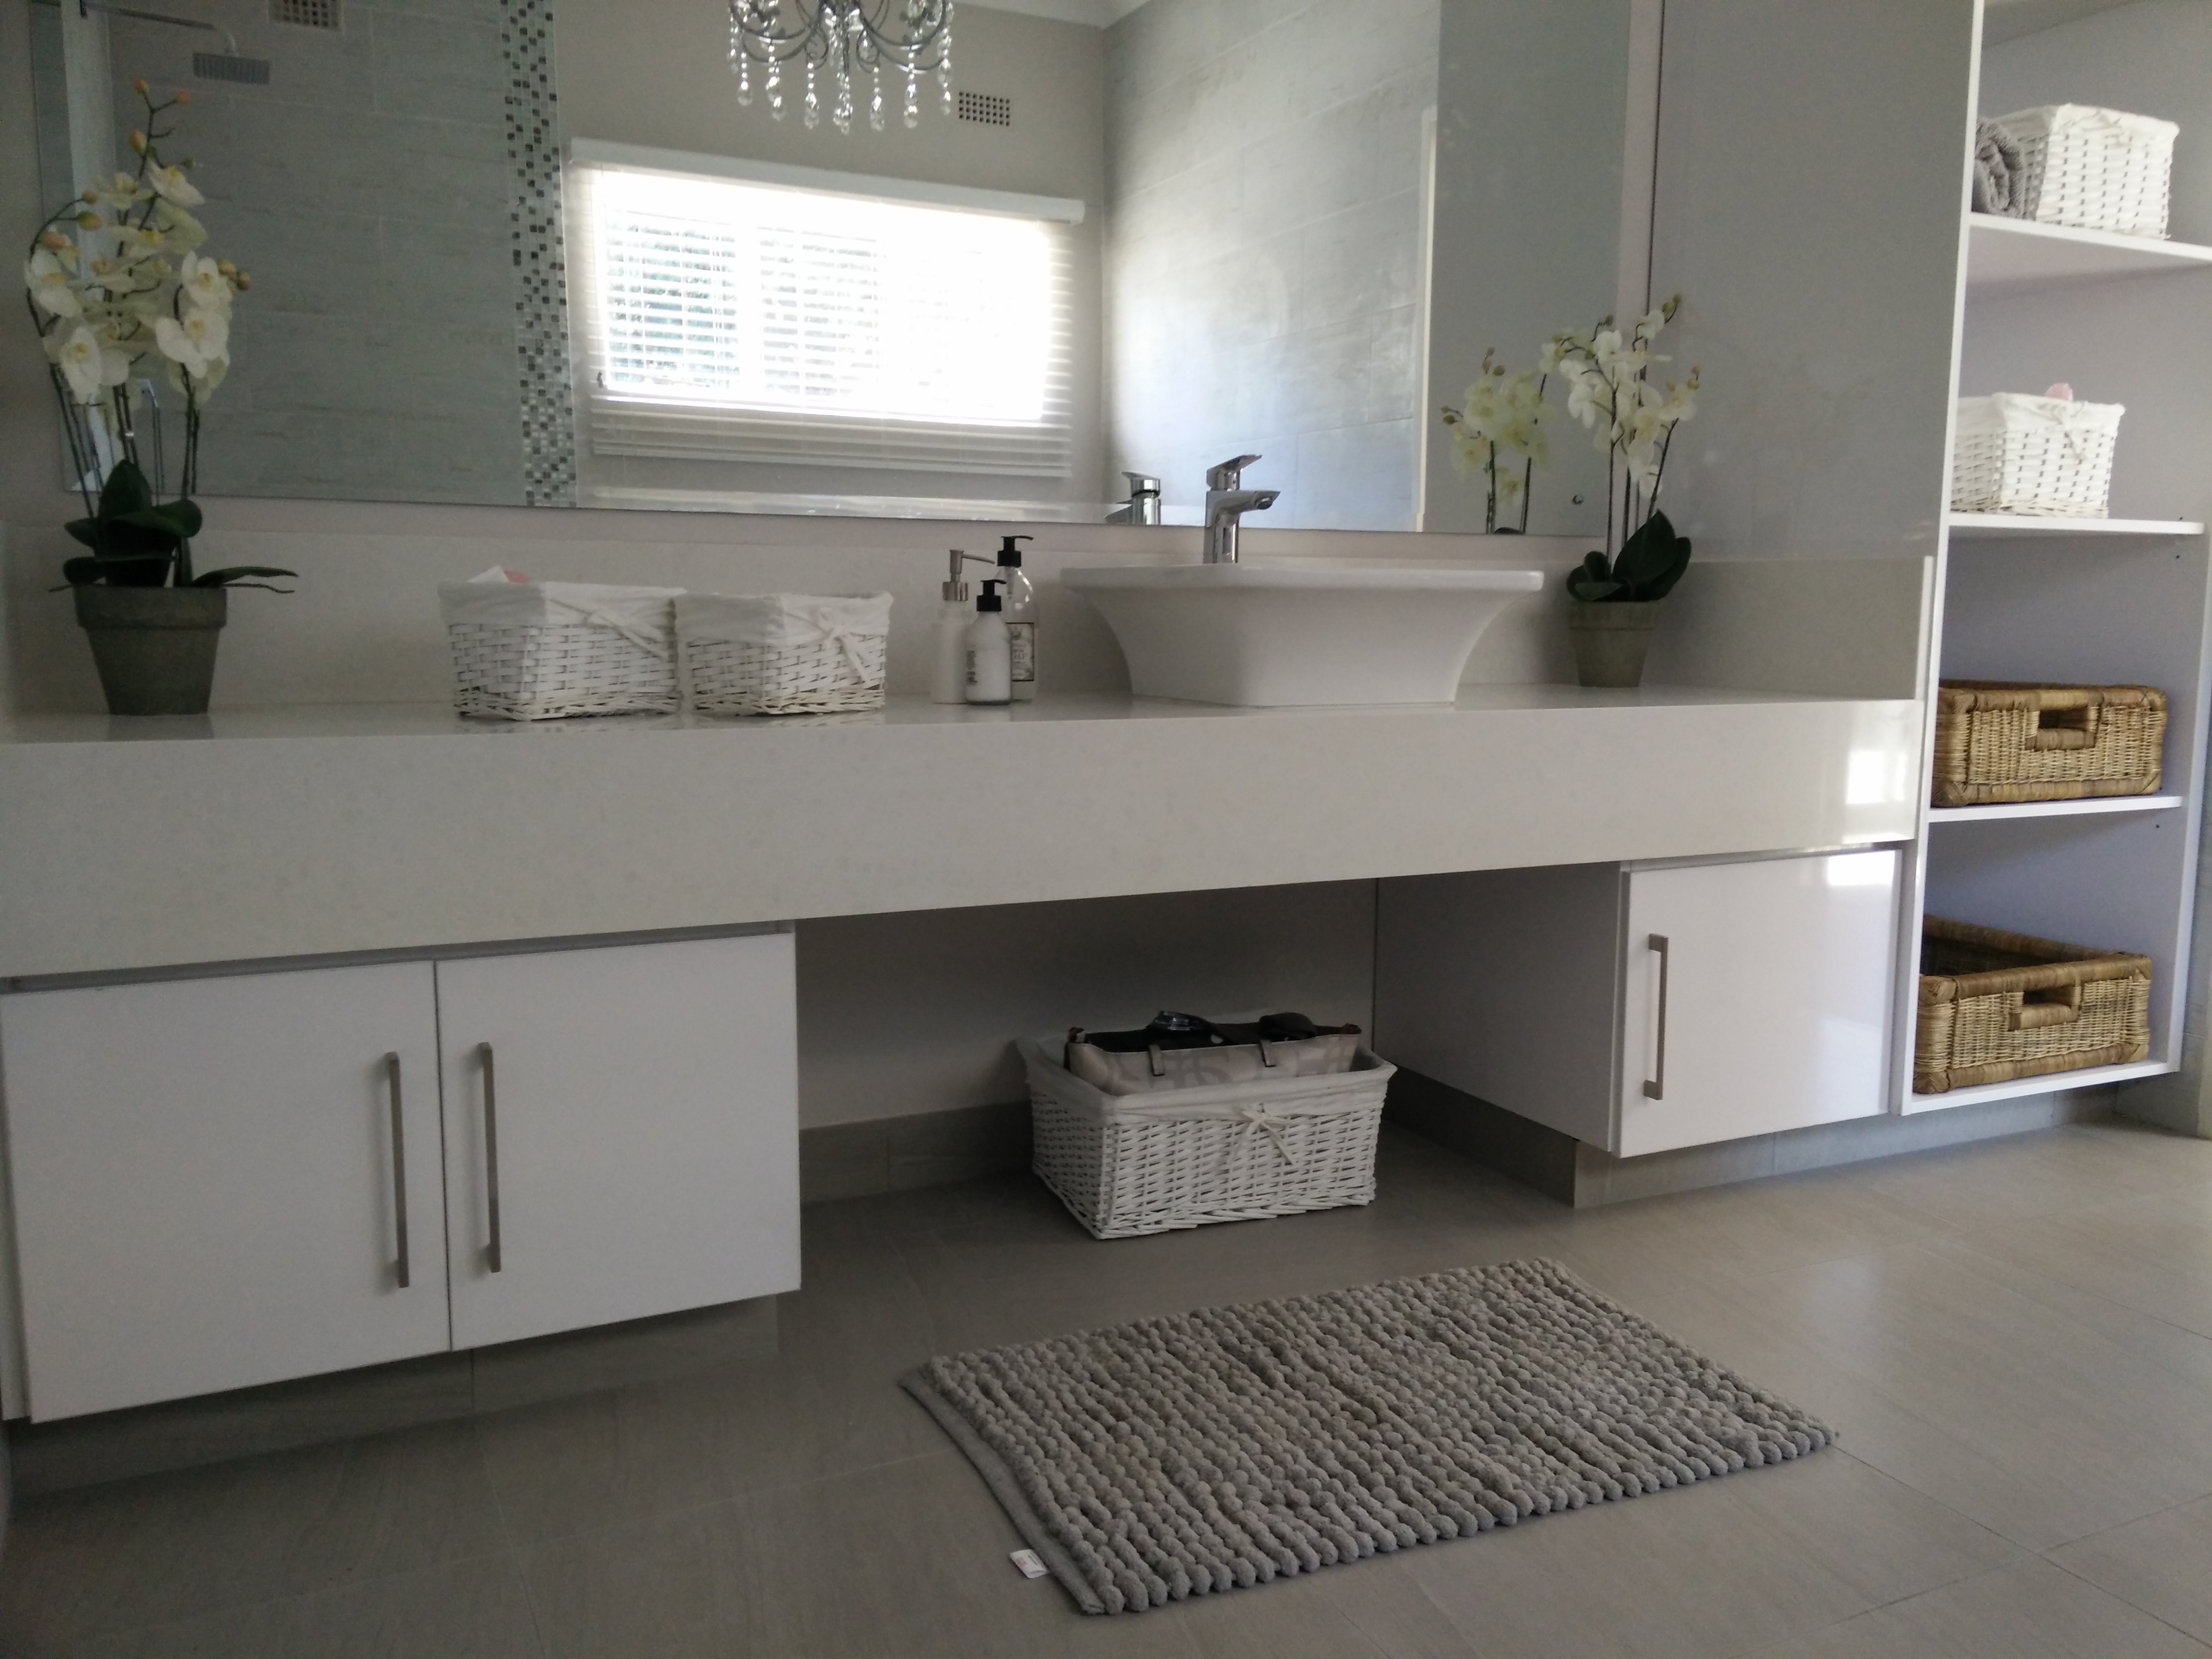 High gloss white vanity unit with white ceaserstone countertop